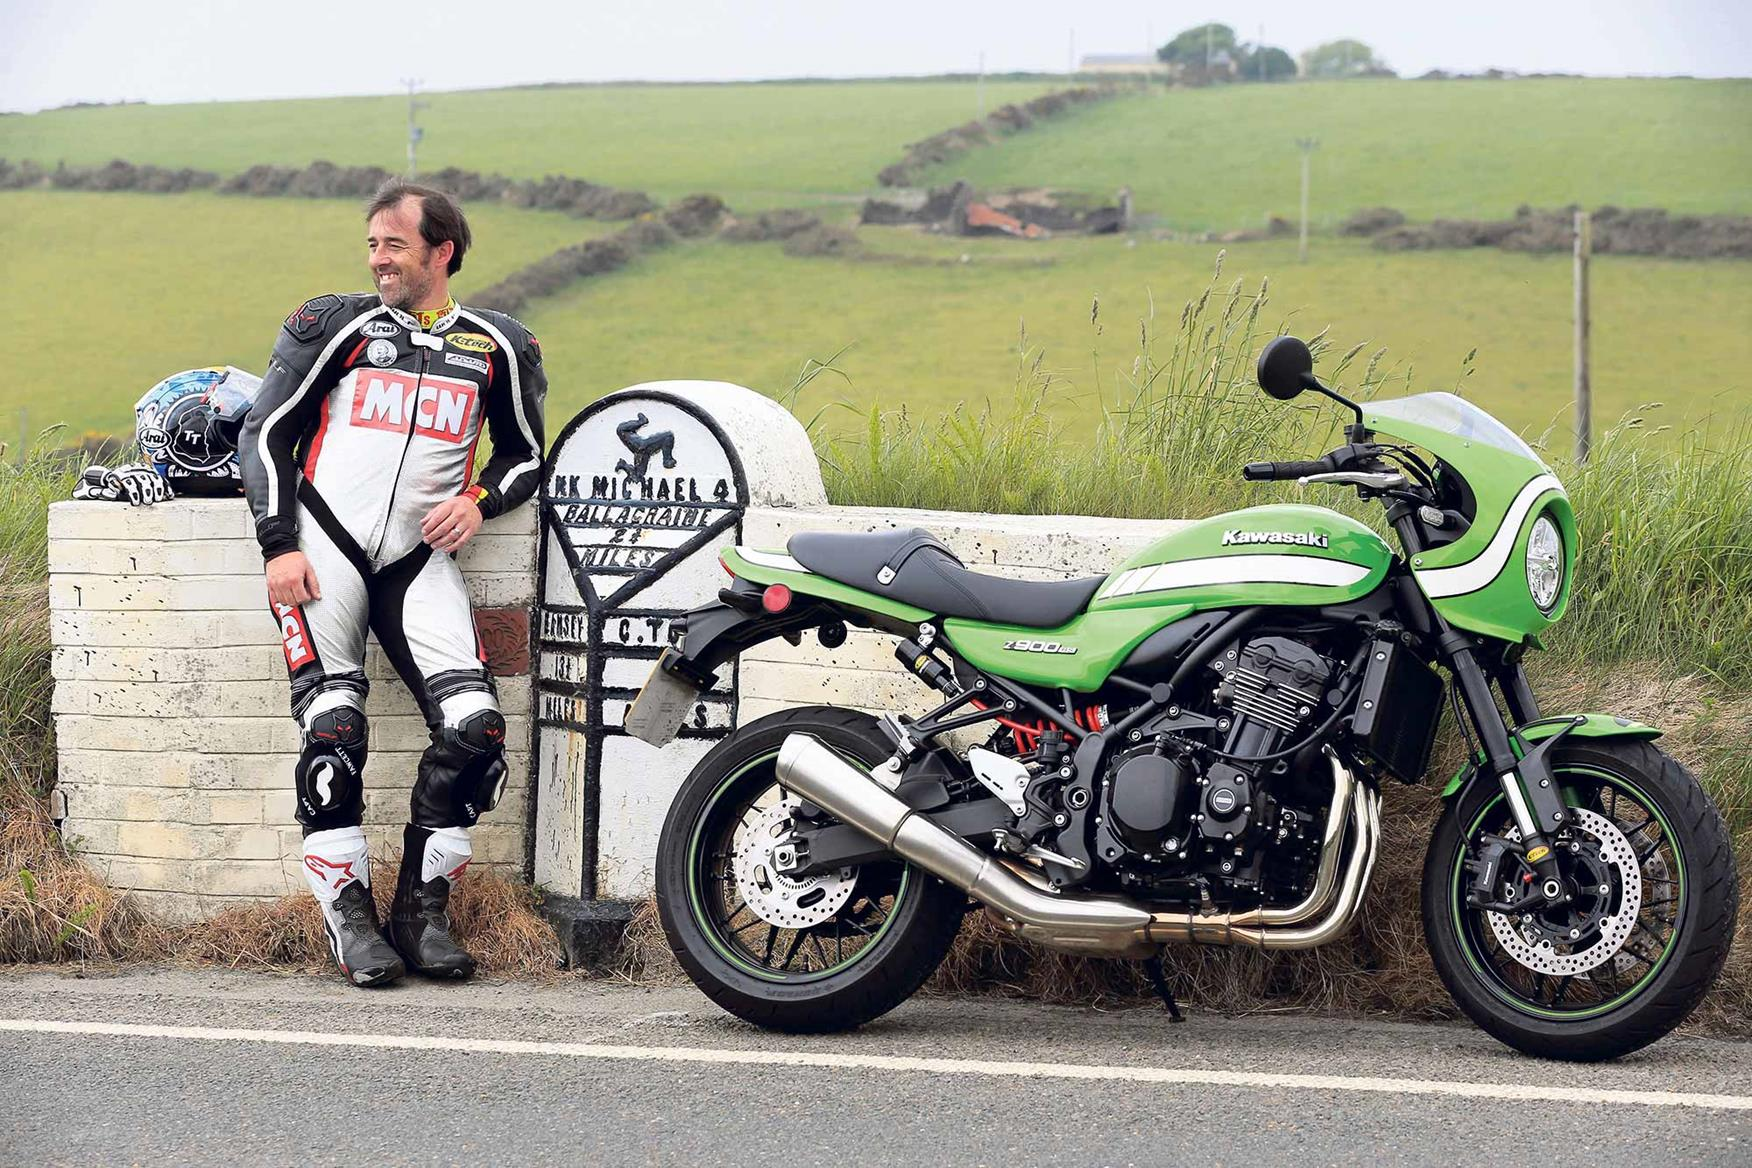 Adam Child admires the Kawasaki Z900RS Cafe